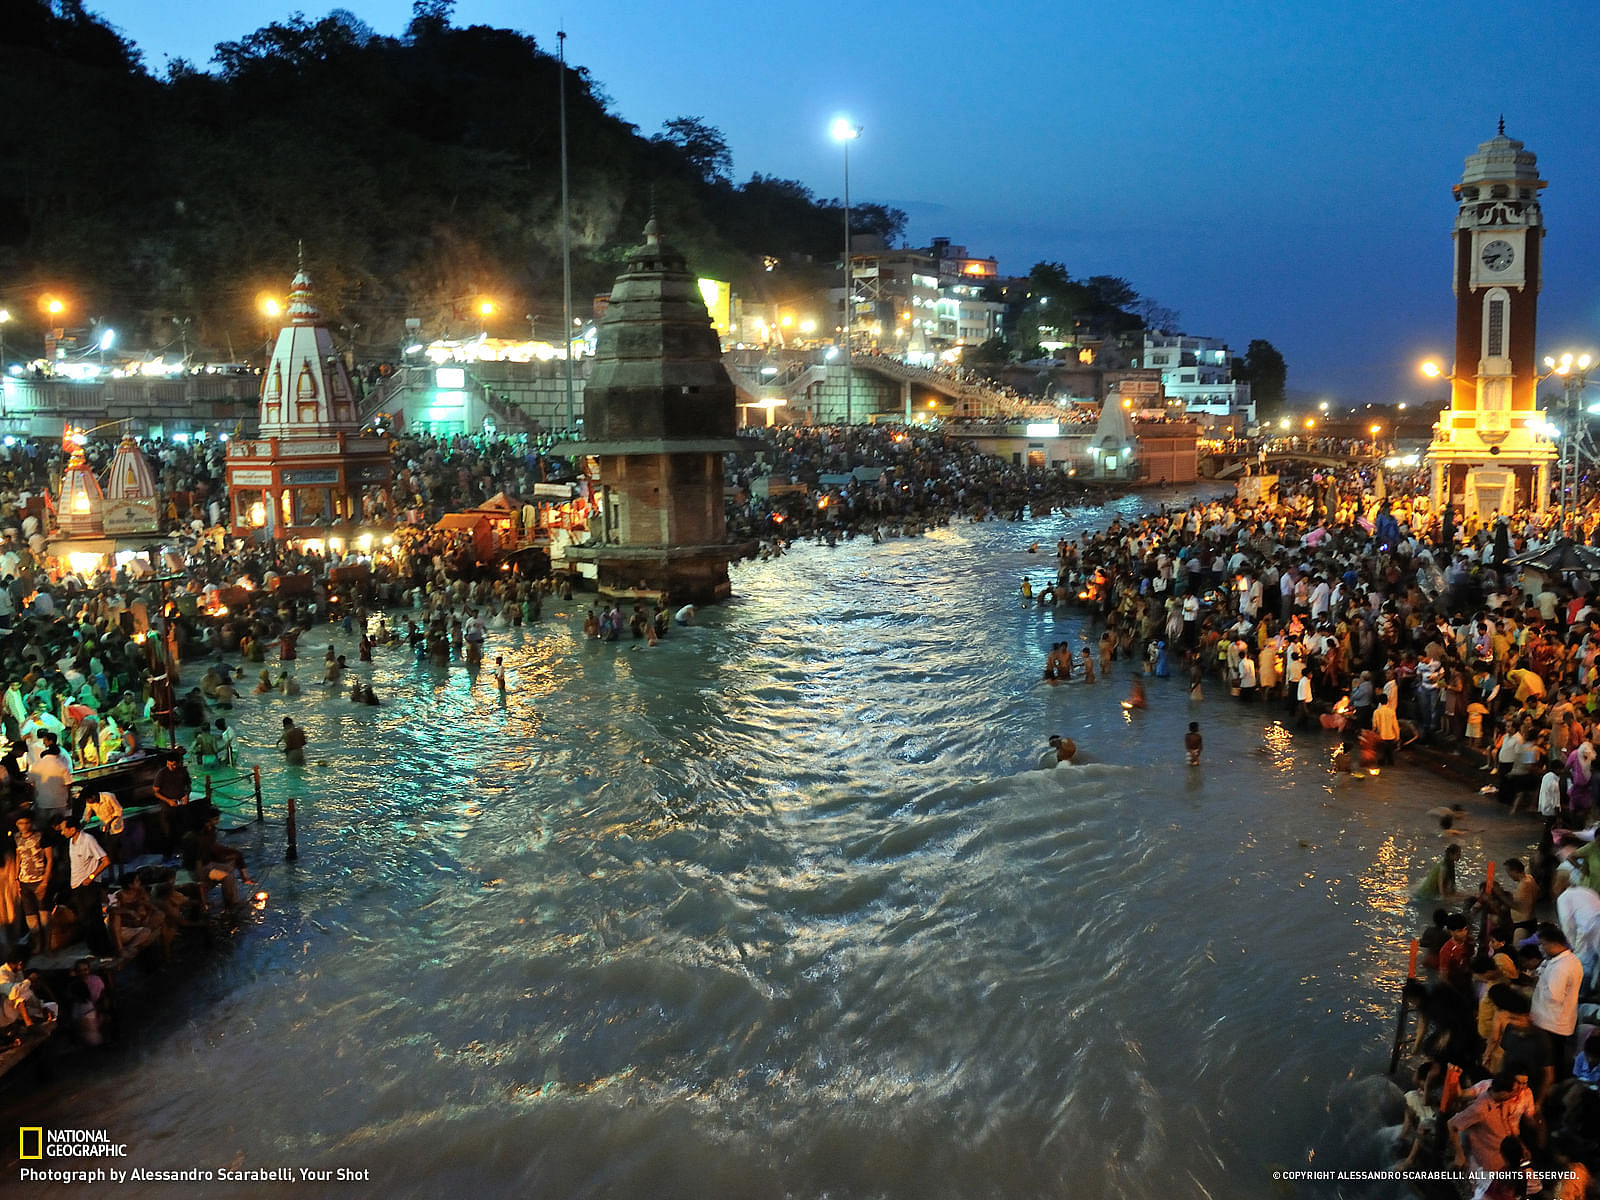 Hindus gather by the millions along the shores of the Ganges River in the city of Haridwar, in Uttarakhand, north-central India. They consider Haridwar one of HinduismÕs seven holiest sites and flock to the river to ritualistically wash away their sins.